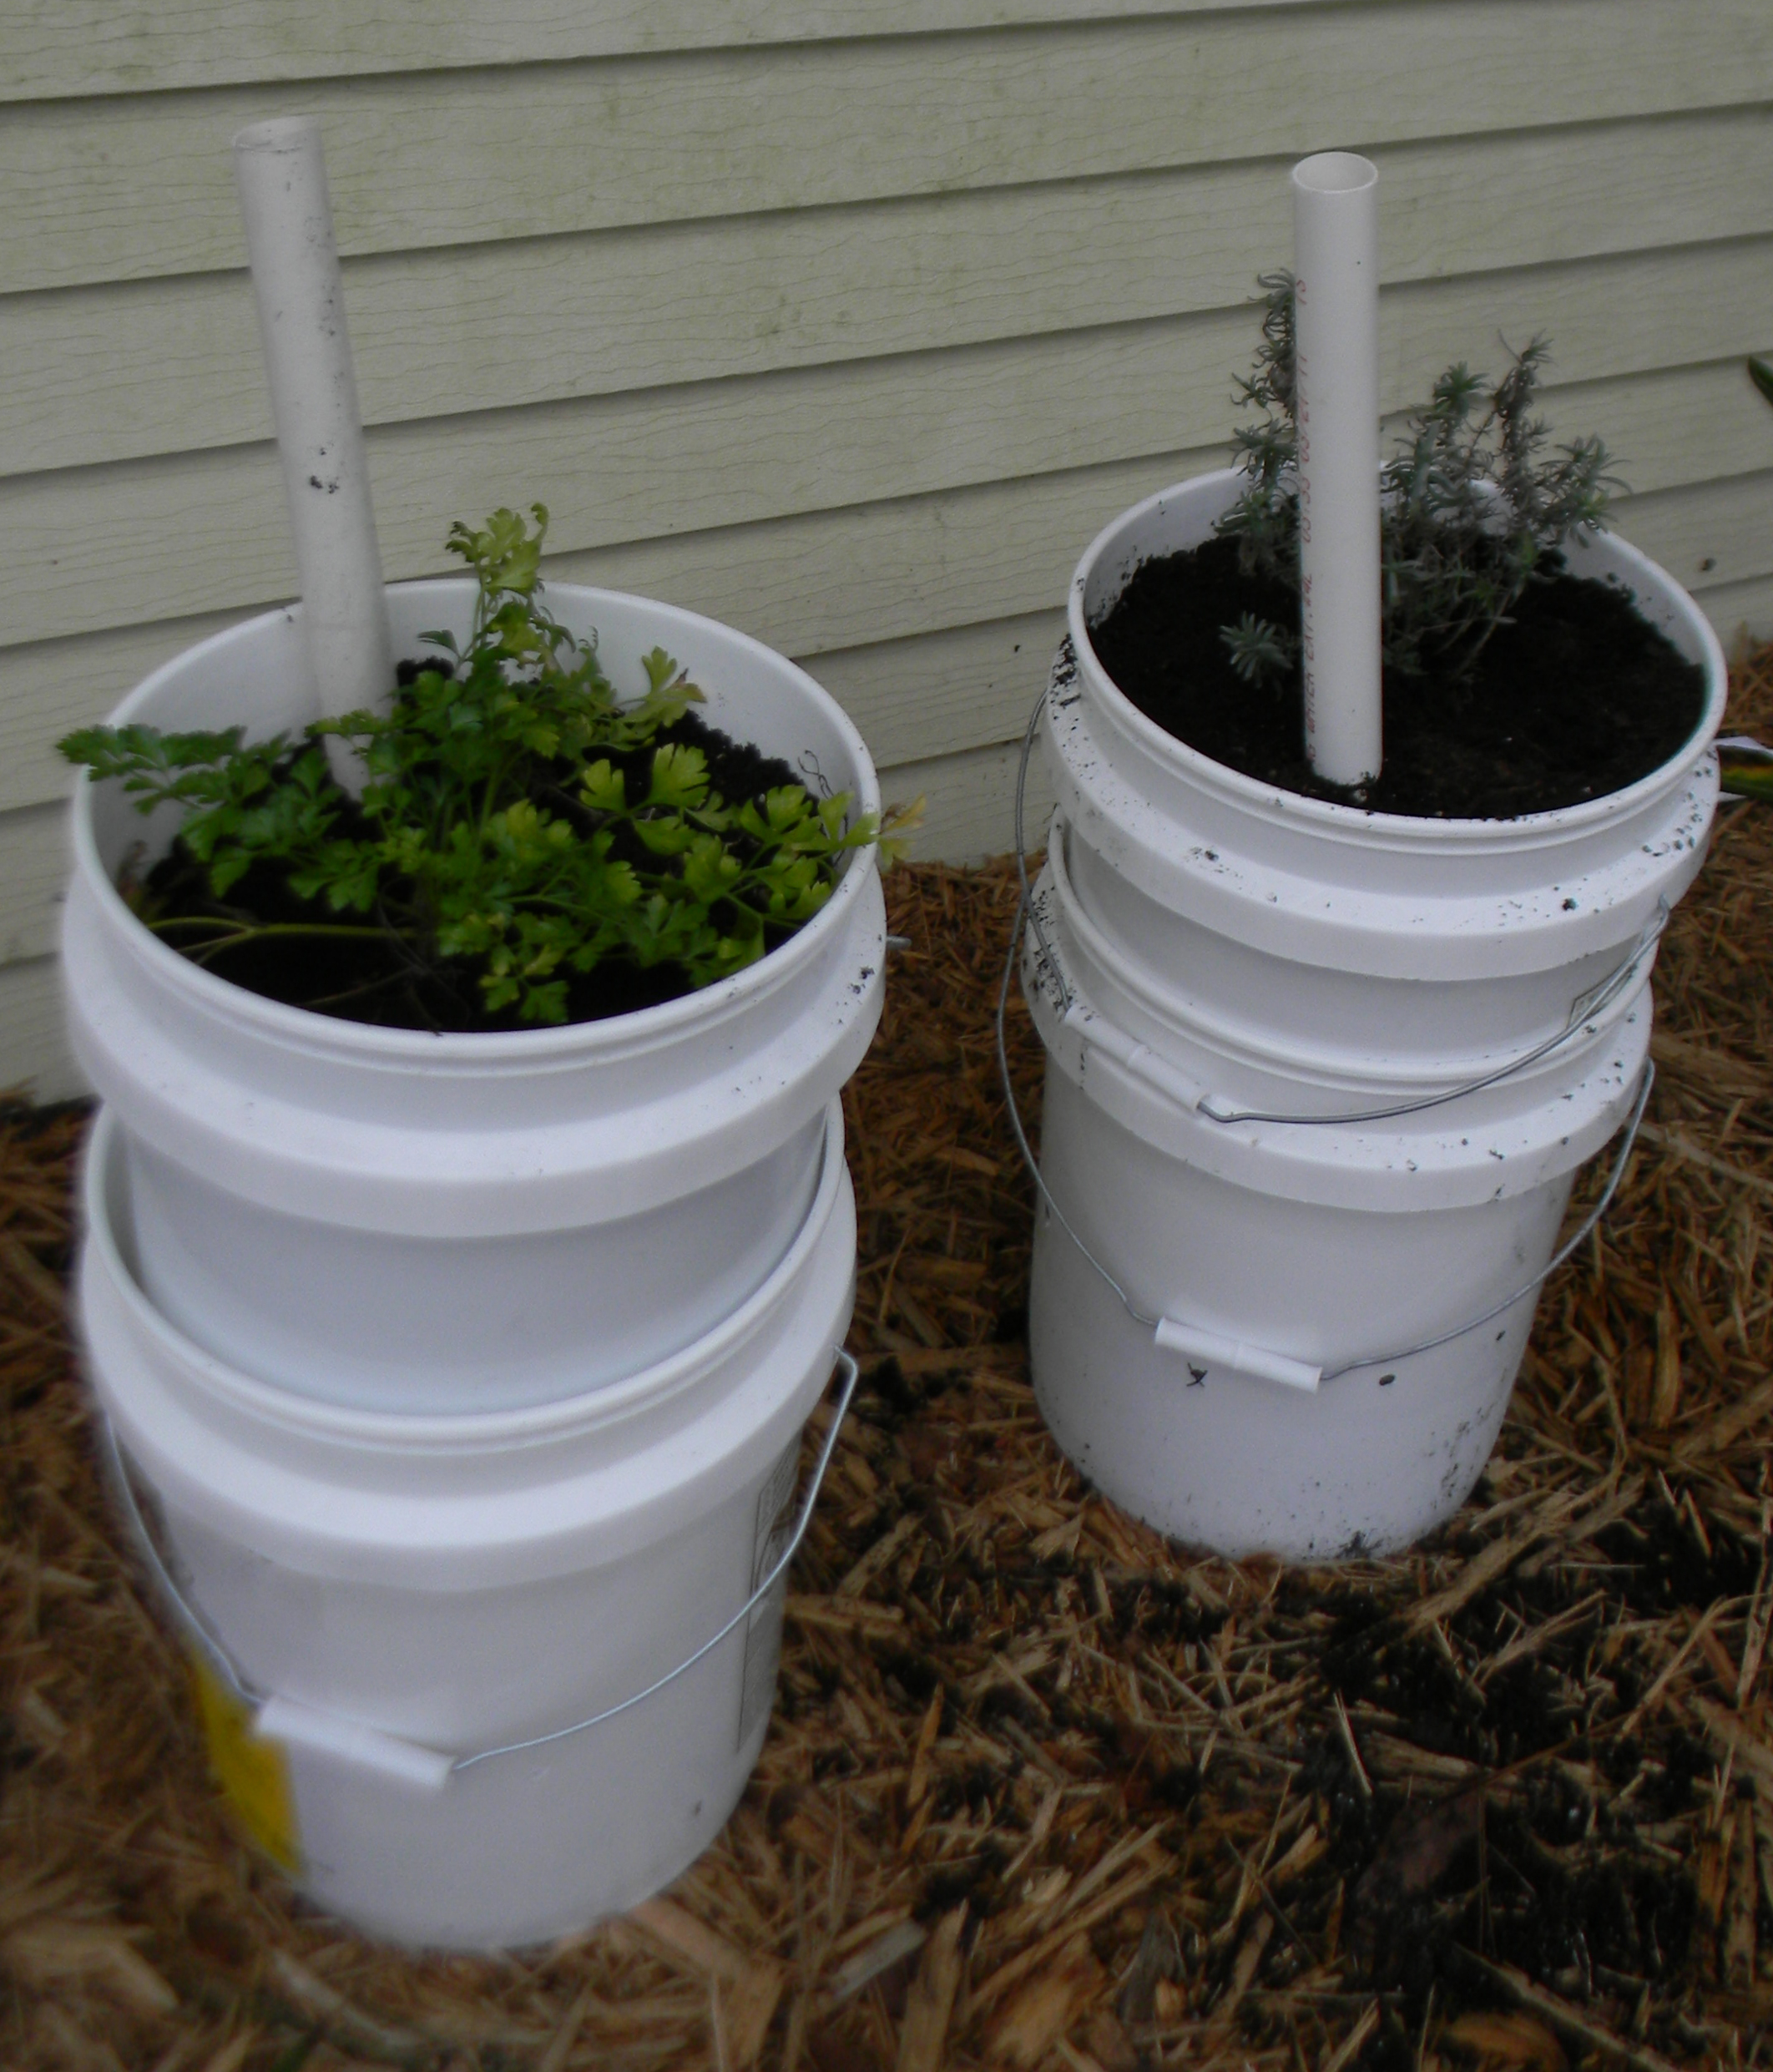 self watering garden containers 5 gallon buckets upated. Black Bedroom Furniture Sets. Home Design Ideas